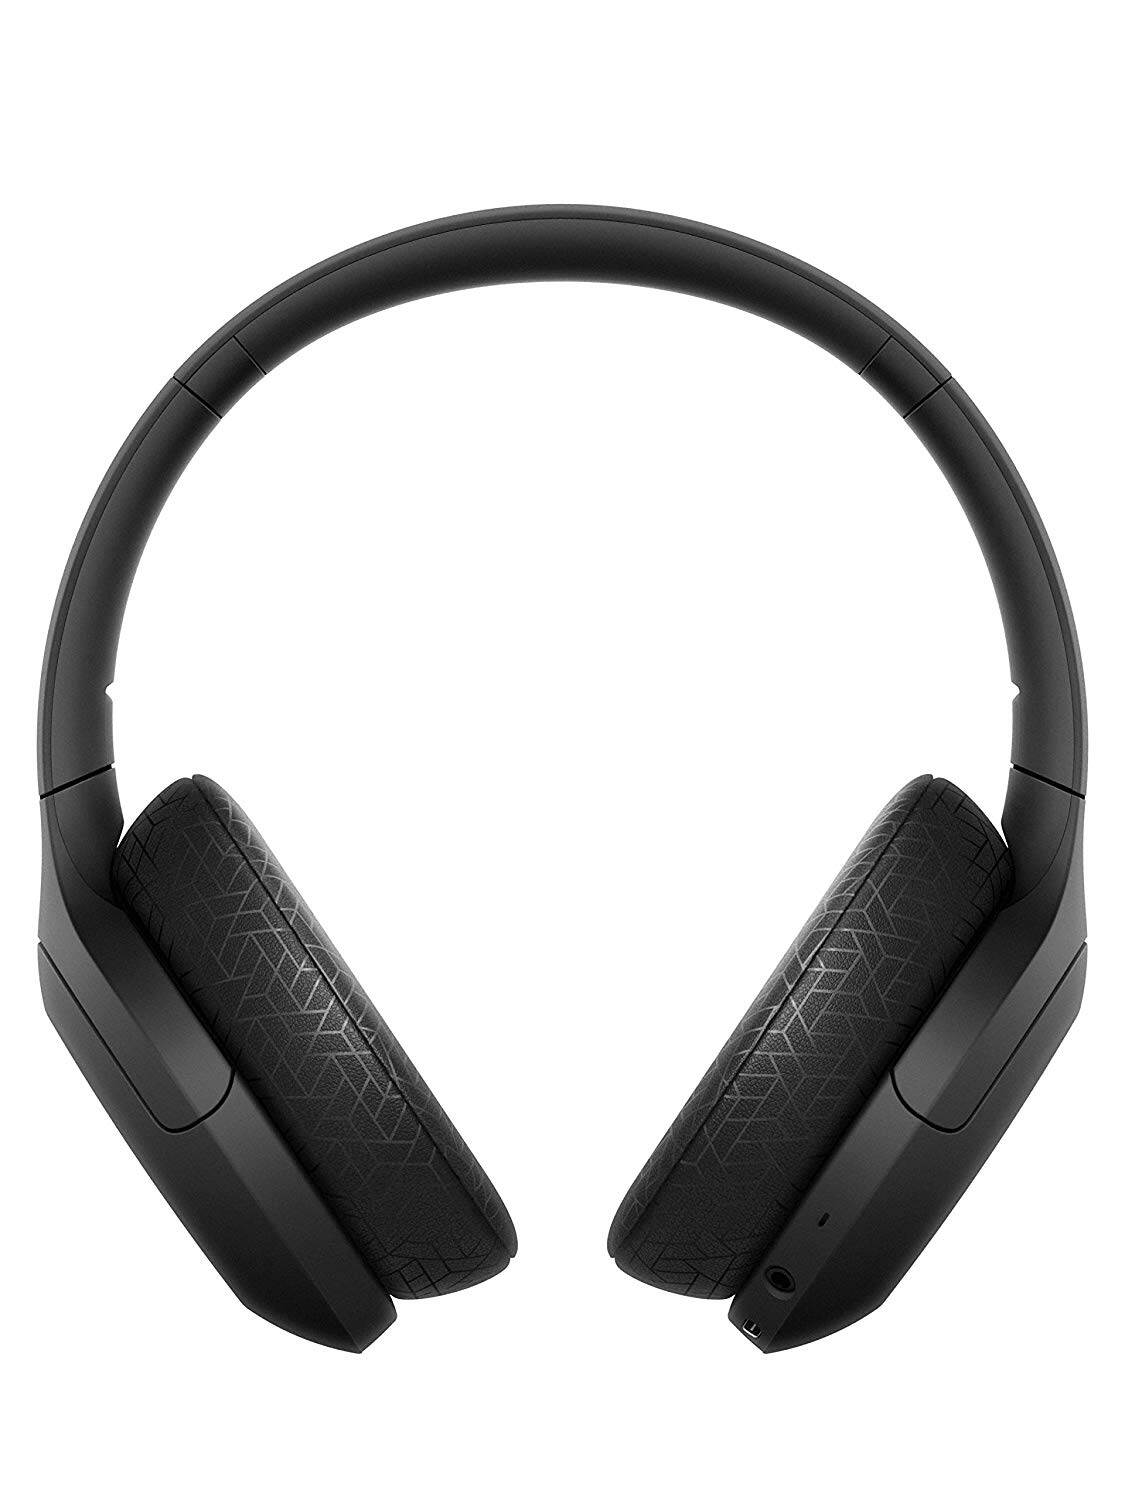 Sony WH-H910N Wireless Noise Cancelling Headphones, 35 Hours Battery Life with Quick Charge, Hi-Res Audio, Touch Control, Black / Blue / Green / Orange / Red